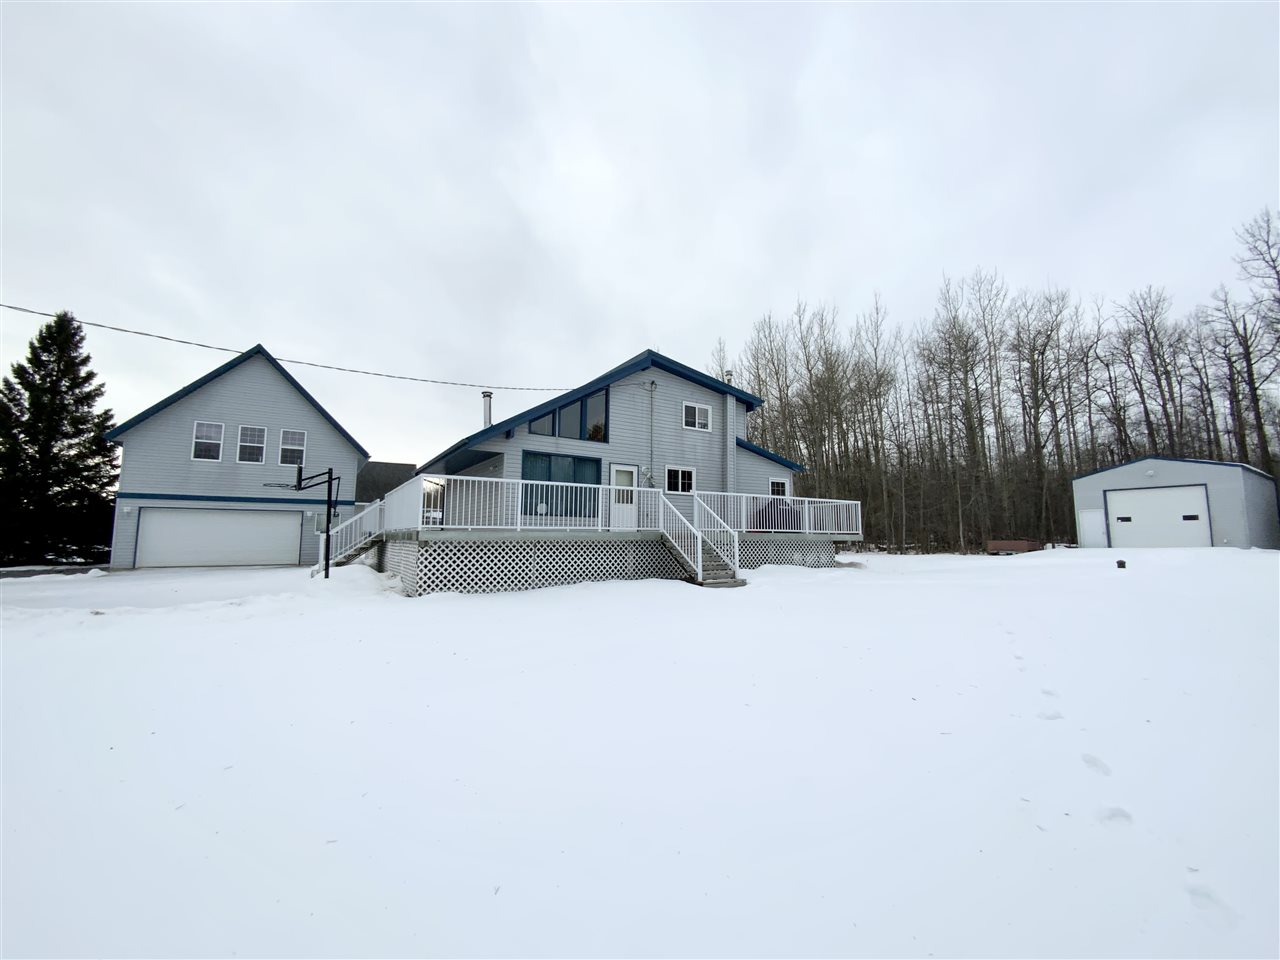 FEATURED LISTING: 508 462014 RGE RD 10 Rural Wetaskiwin County